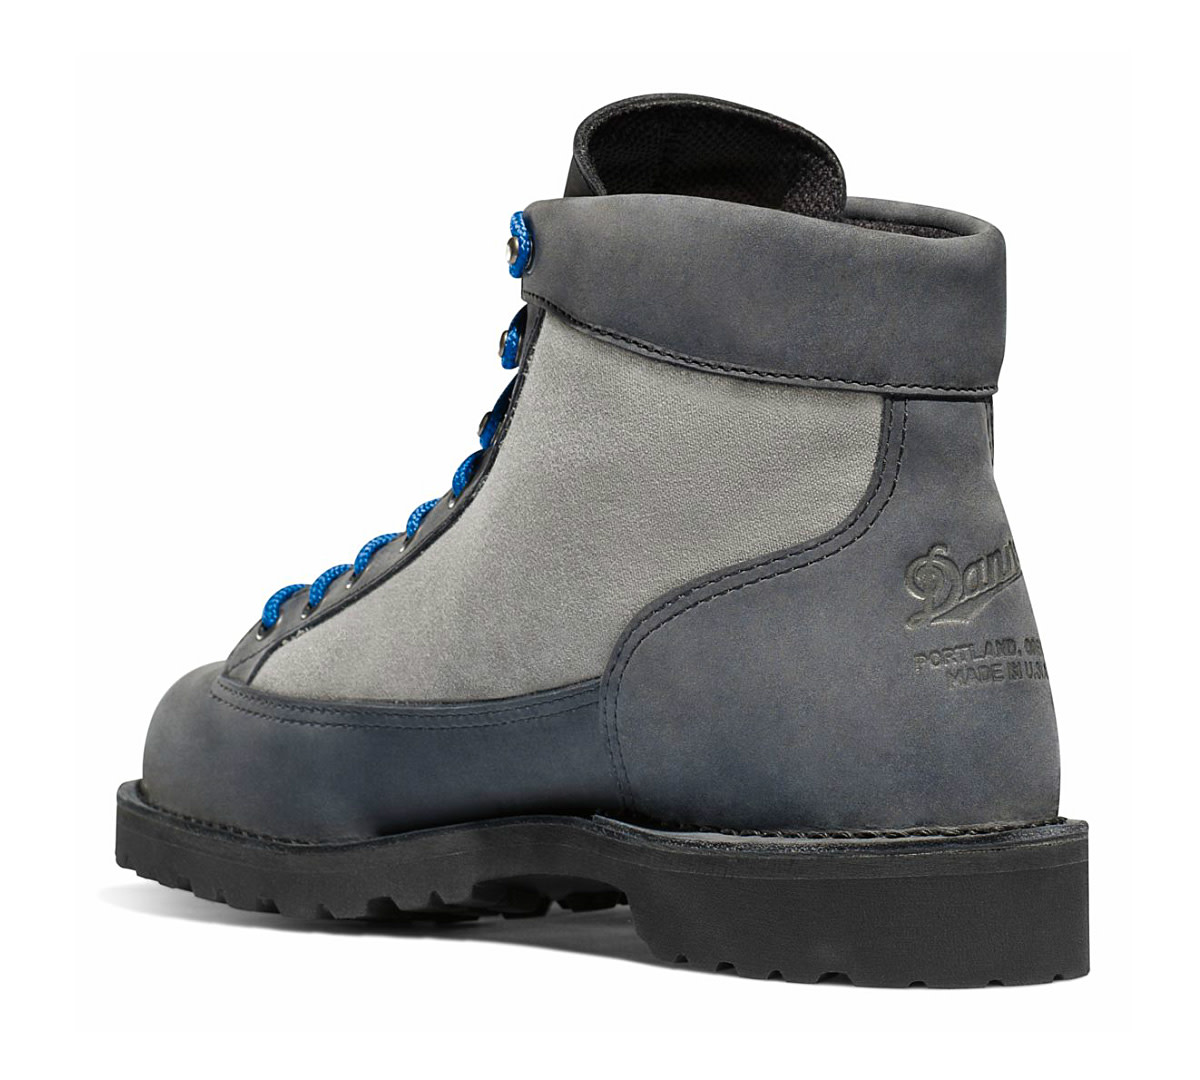 beckel-canvas-products-x-danner-light-beckel-boot-collection-31